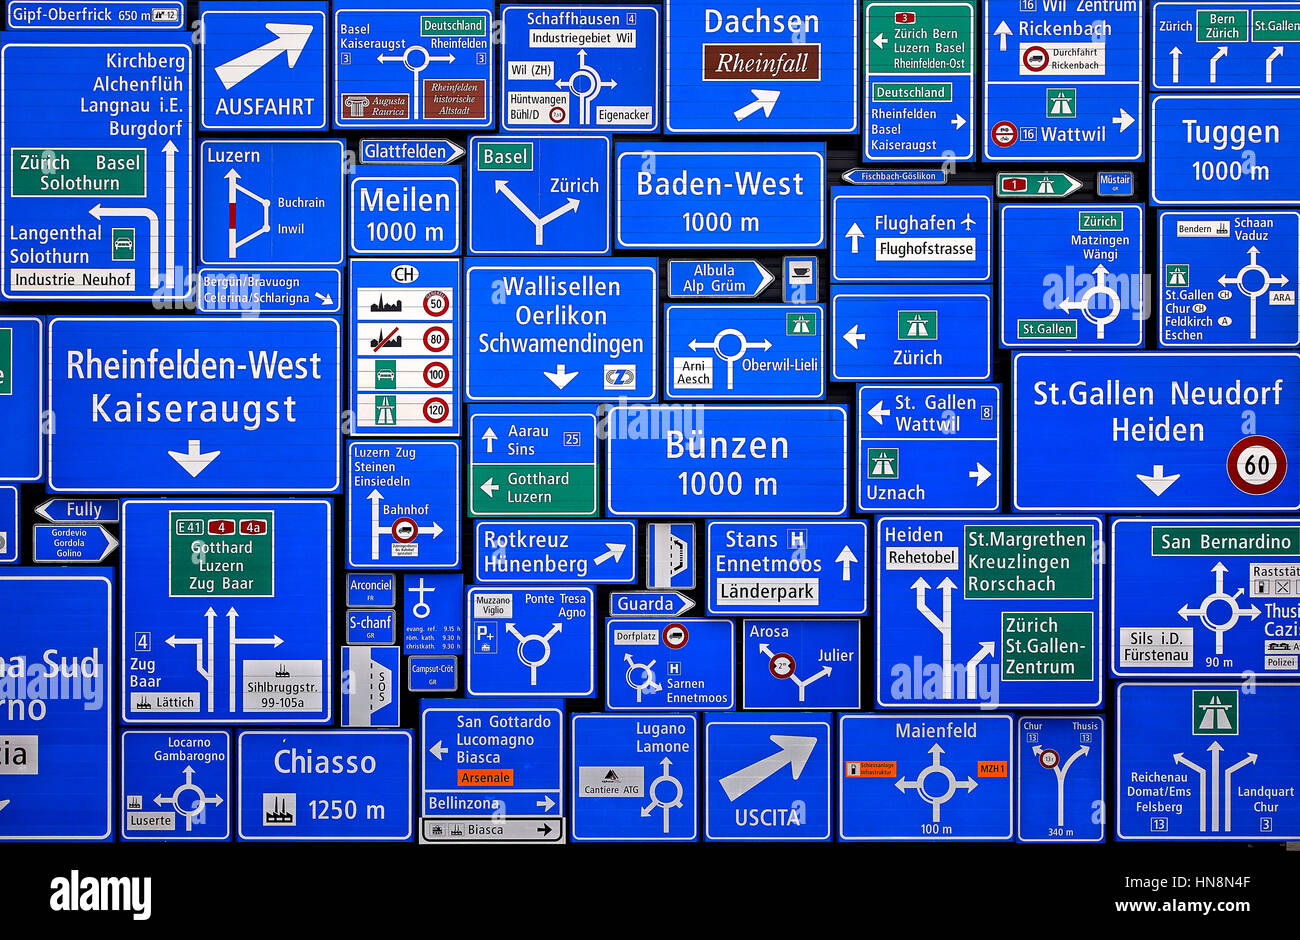 Road signs in the Swiss Museum of Transport (Verkehrshaus der Schweiz) in Lucerne, Switzerland. - Stock Image